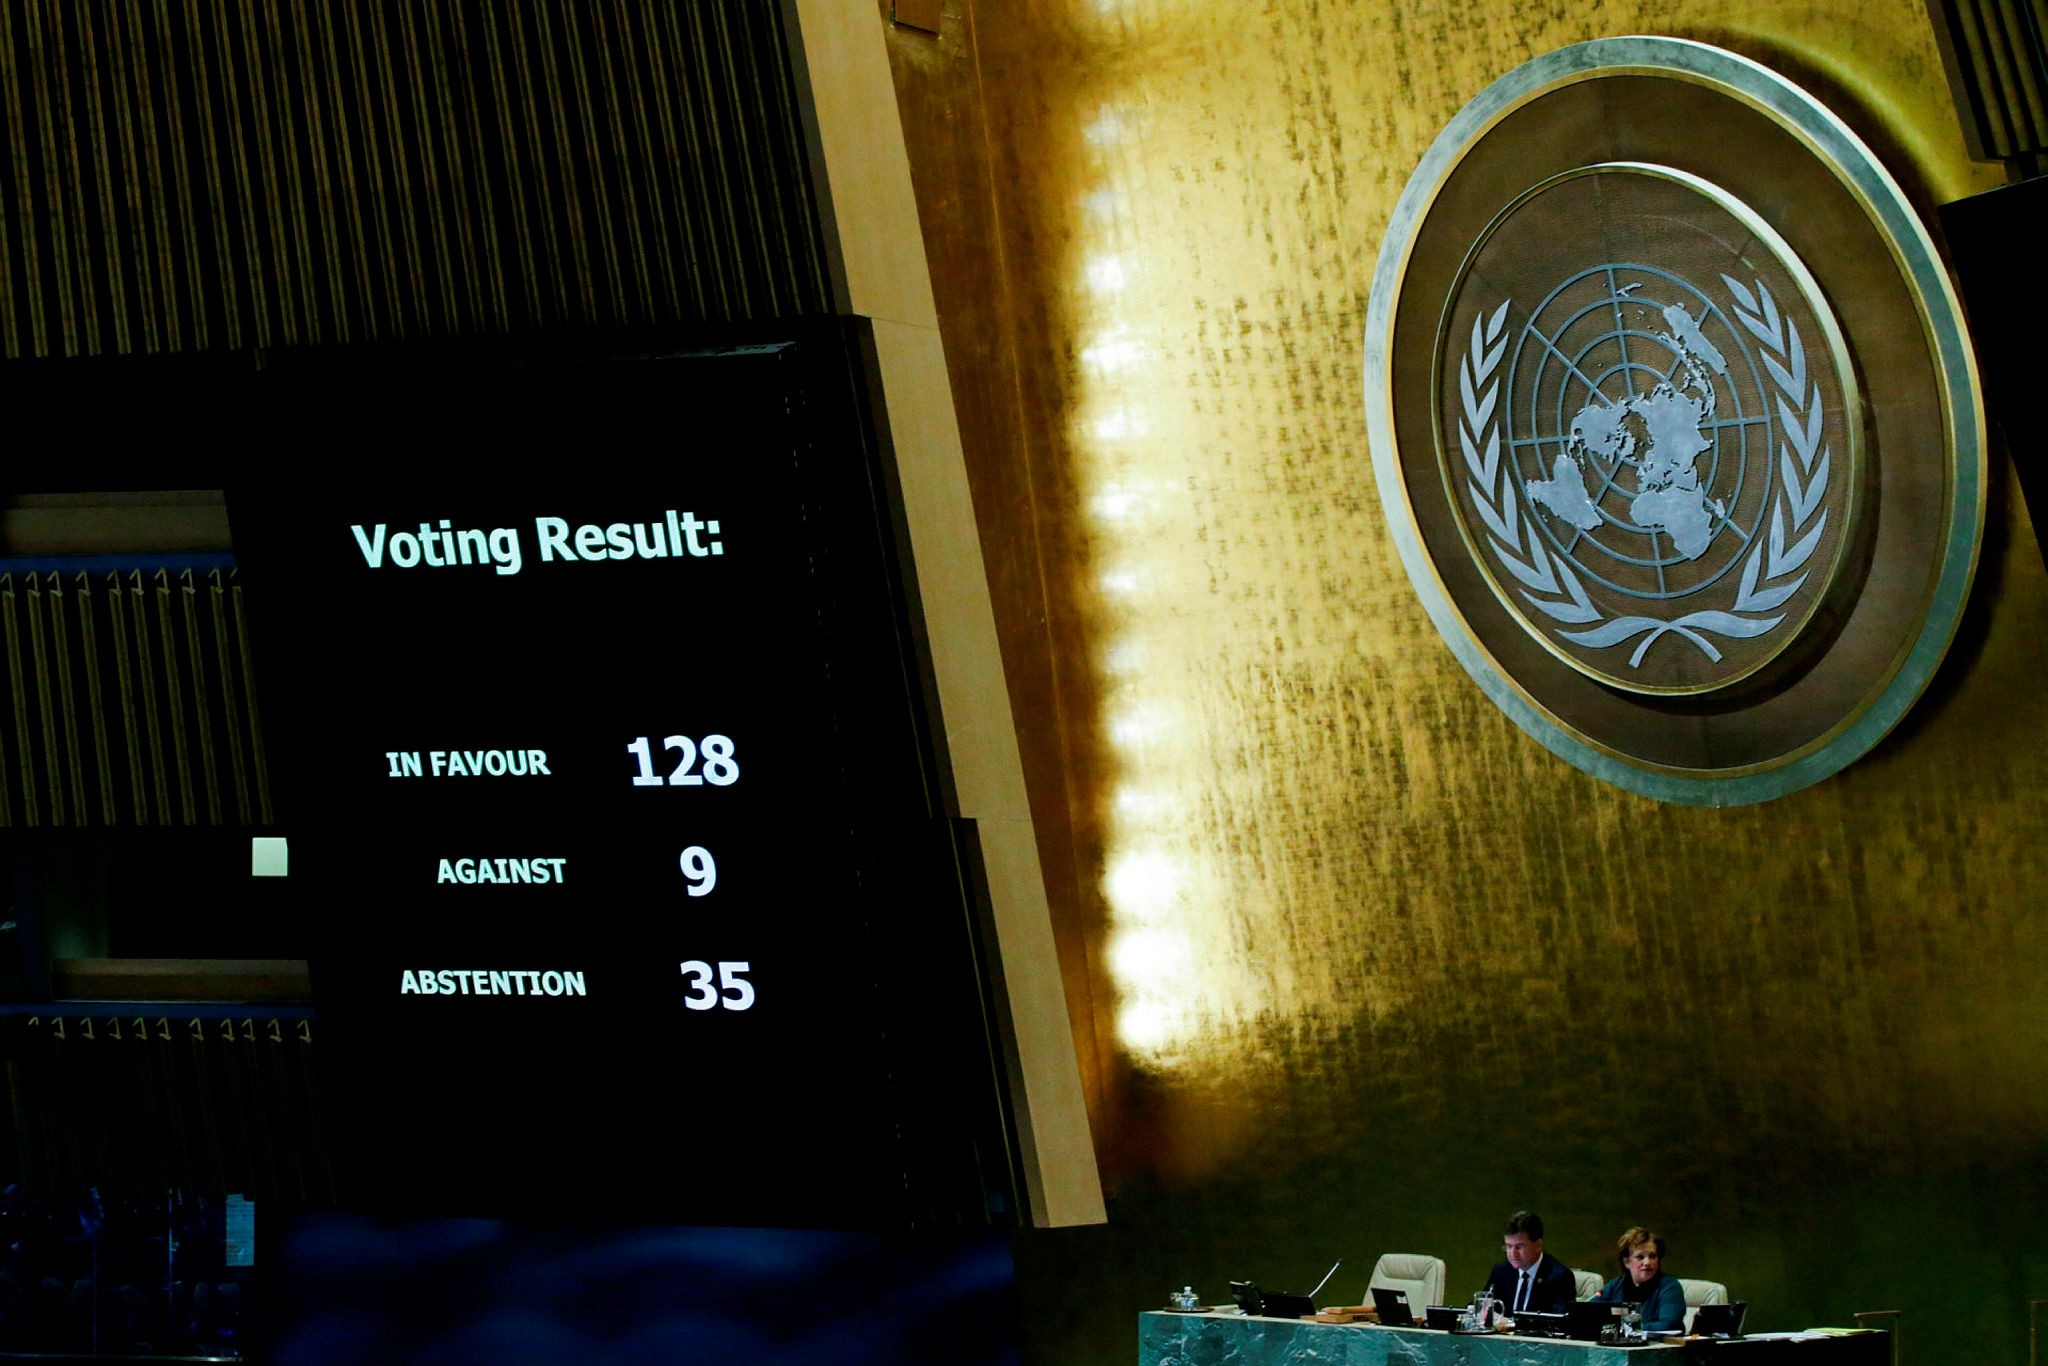 The results of the vote on Jerusalem are seen on a display board at the General Assembly hall, on December 21, 2017, at UN Headquarters in New York. (AFP Photo)